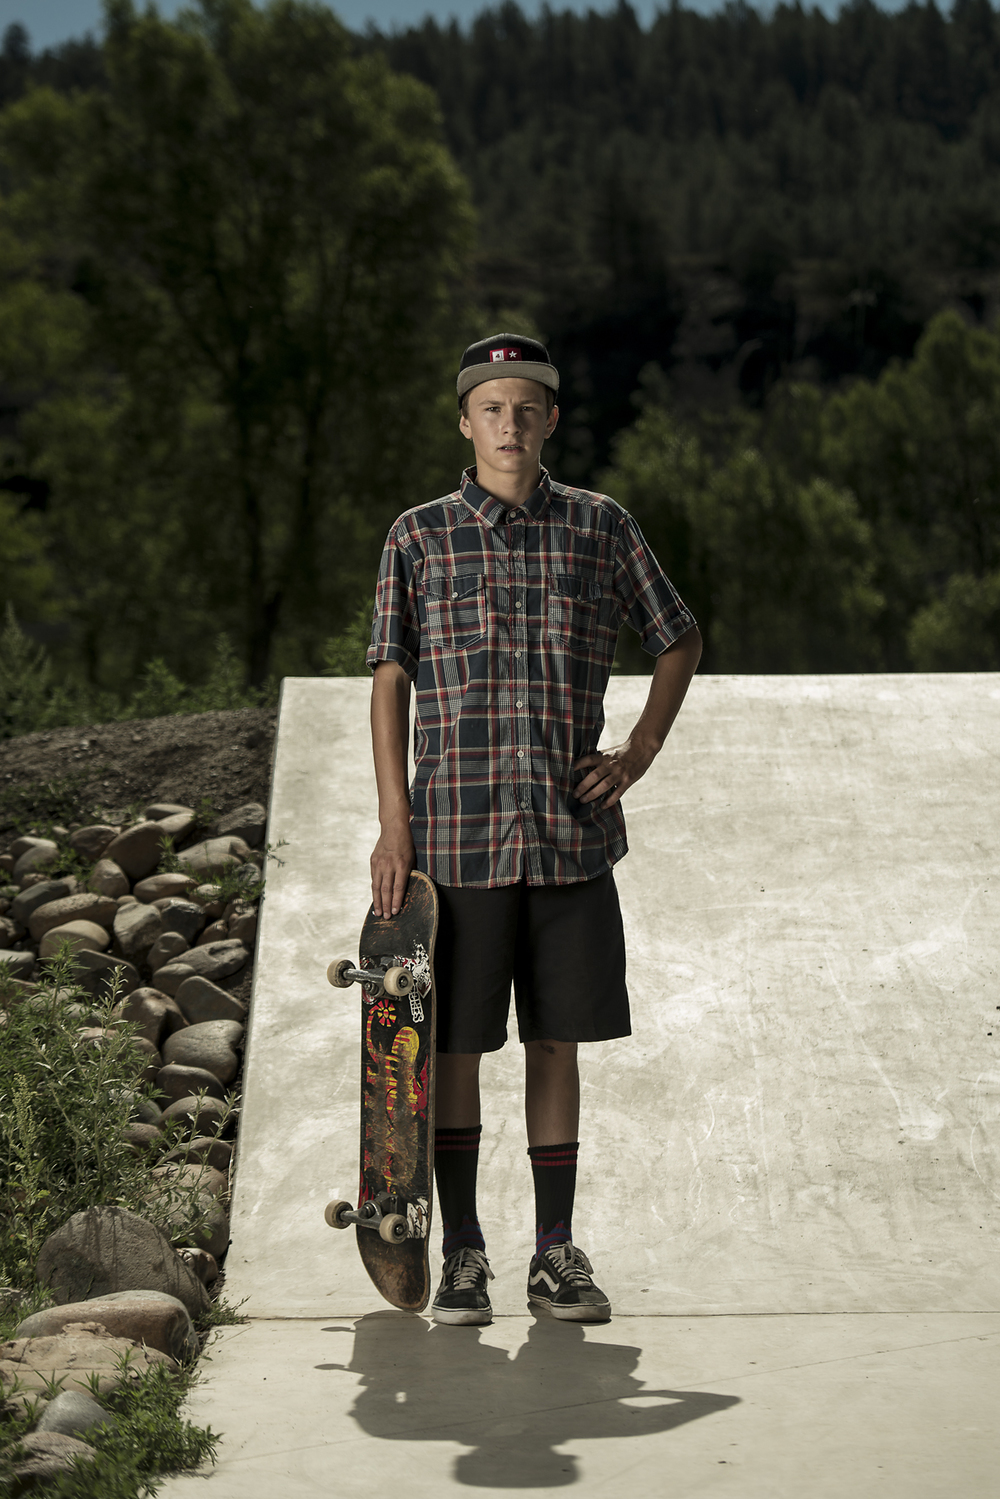 A youth skateboarder pauses for a portrait